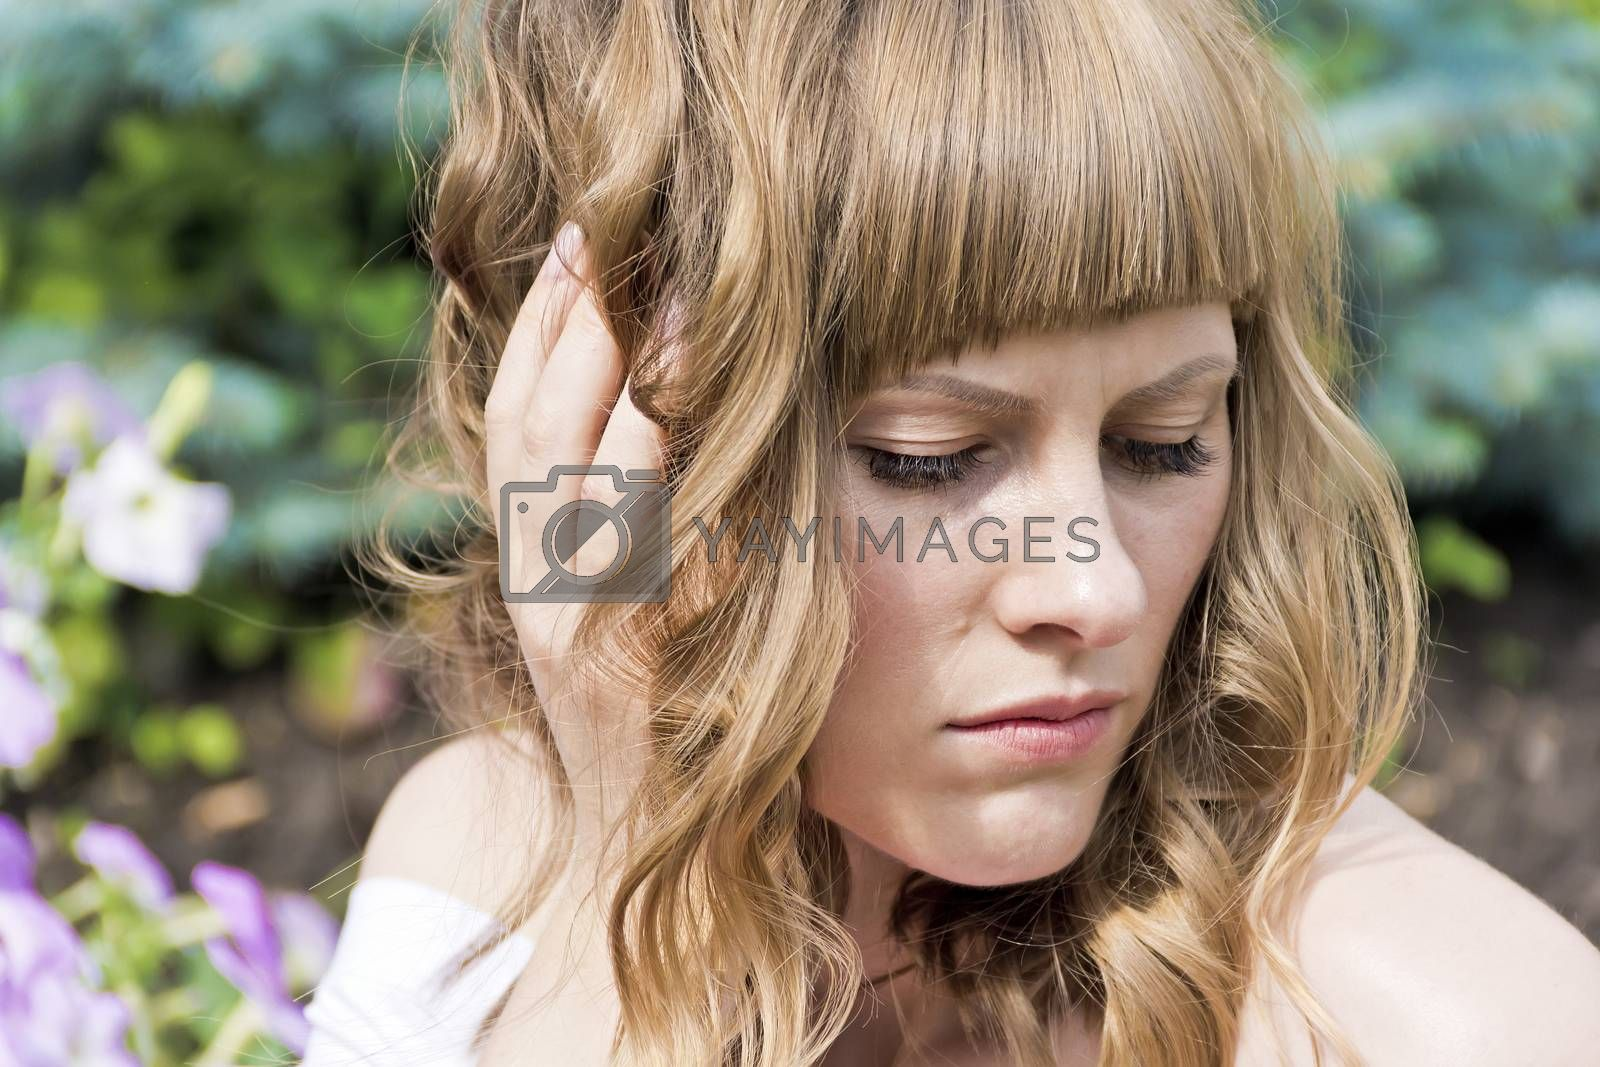 Horizontal portrait of youngl woman with blond hair on summer background